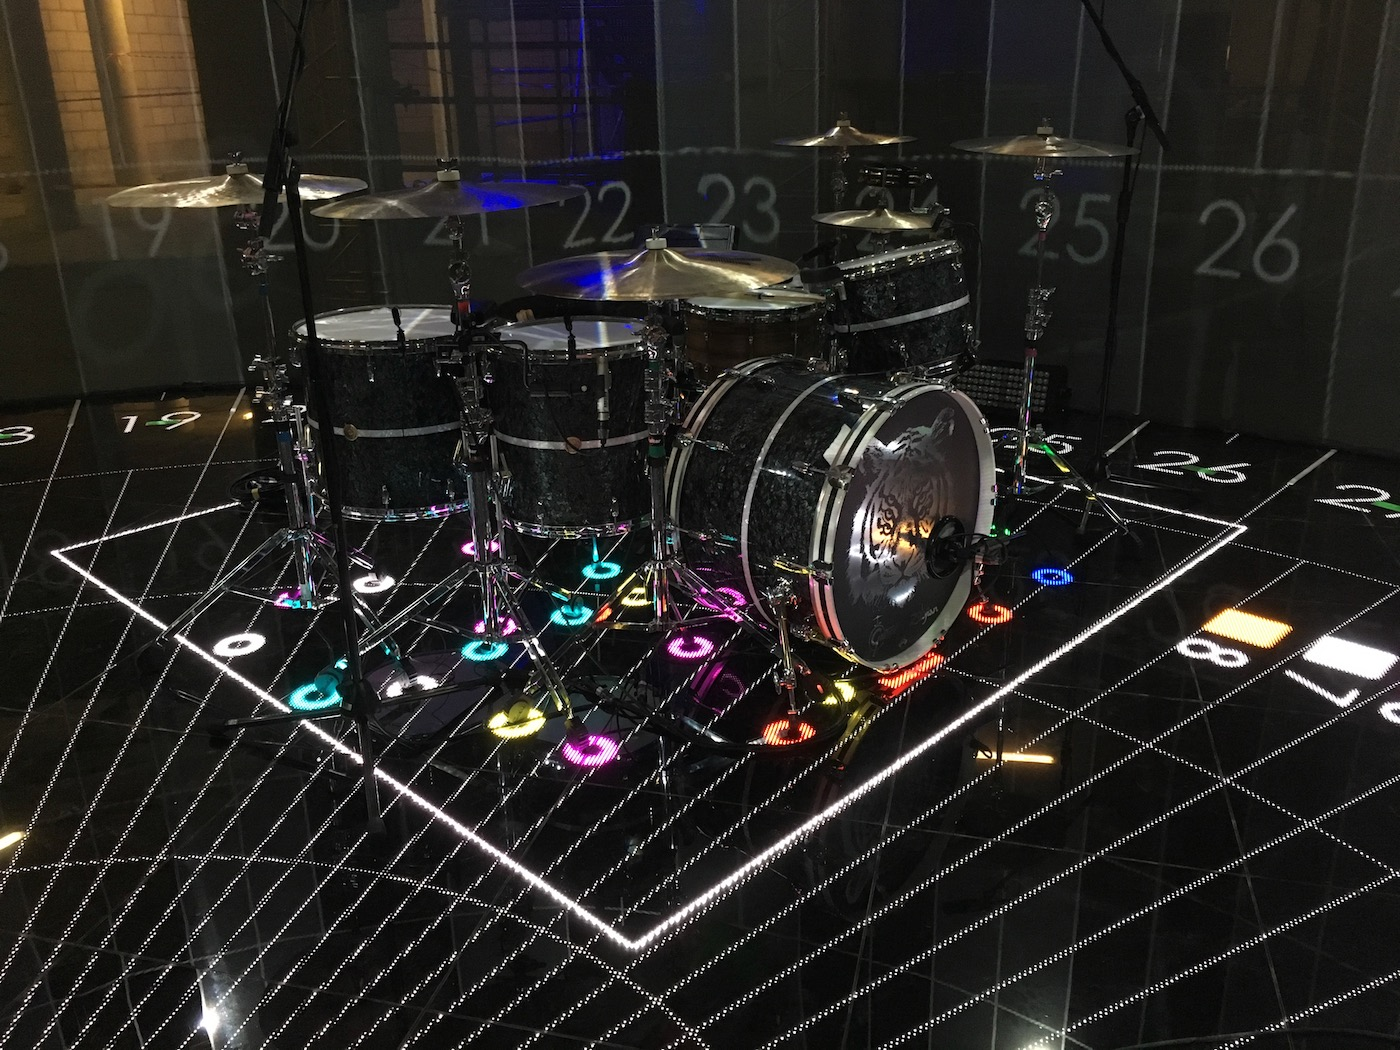 006 LED DRUM MAT